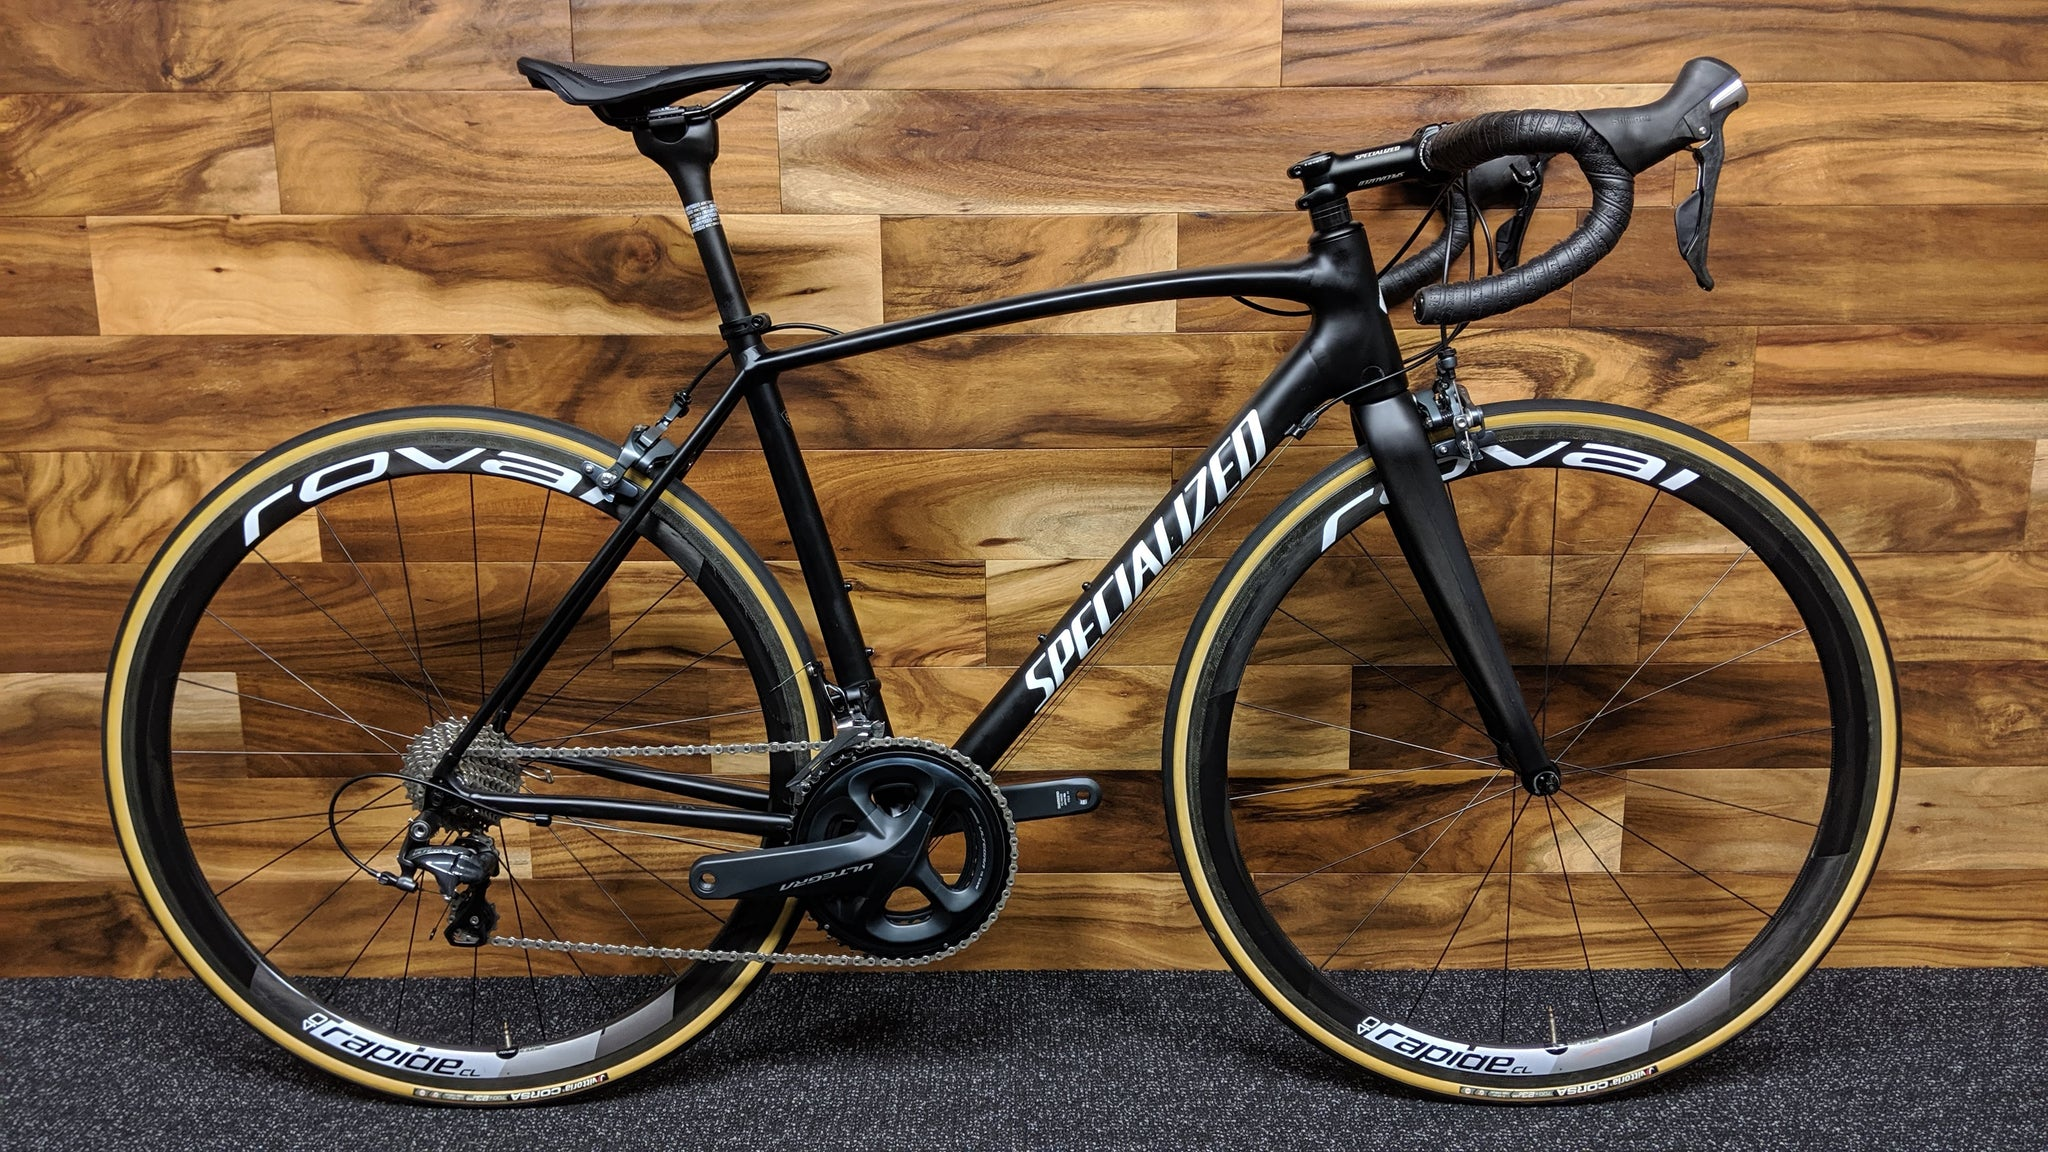 2015 SPECIALIZED ALLEZ COMP RACE ULTEGRA